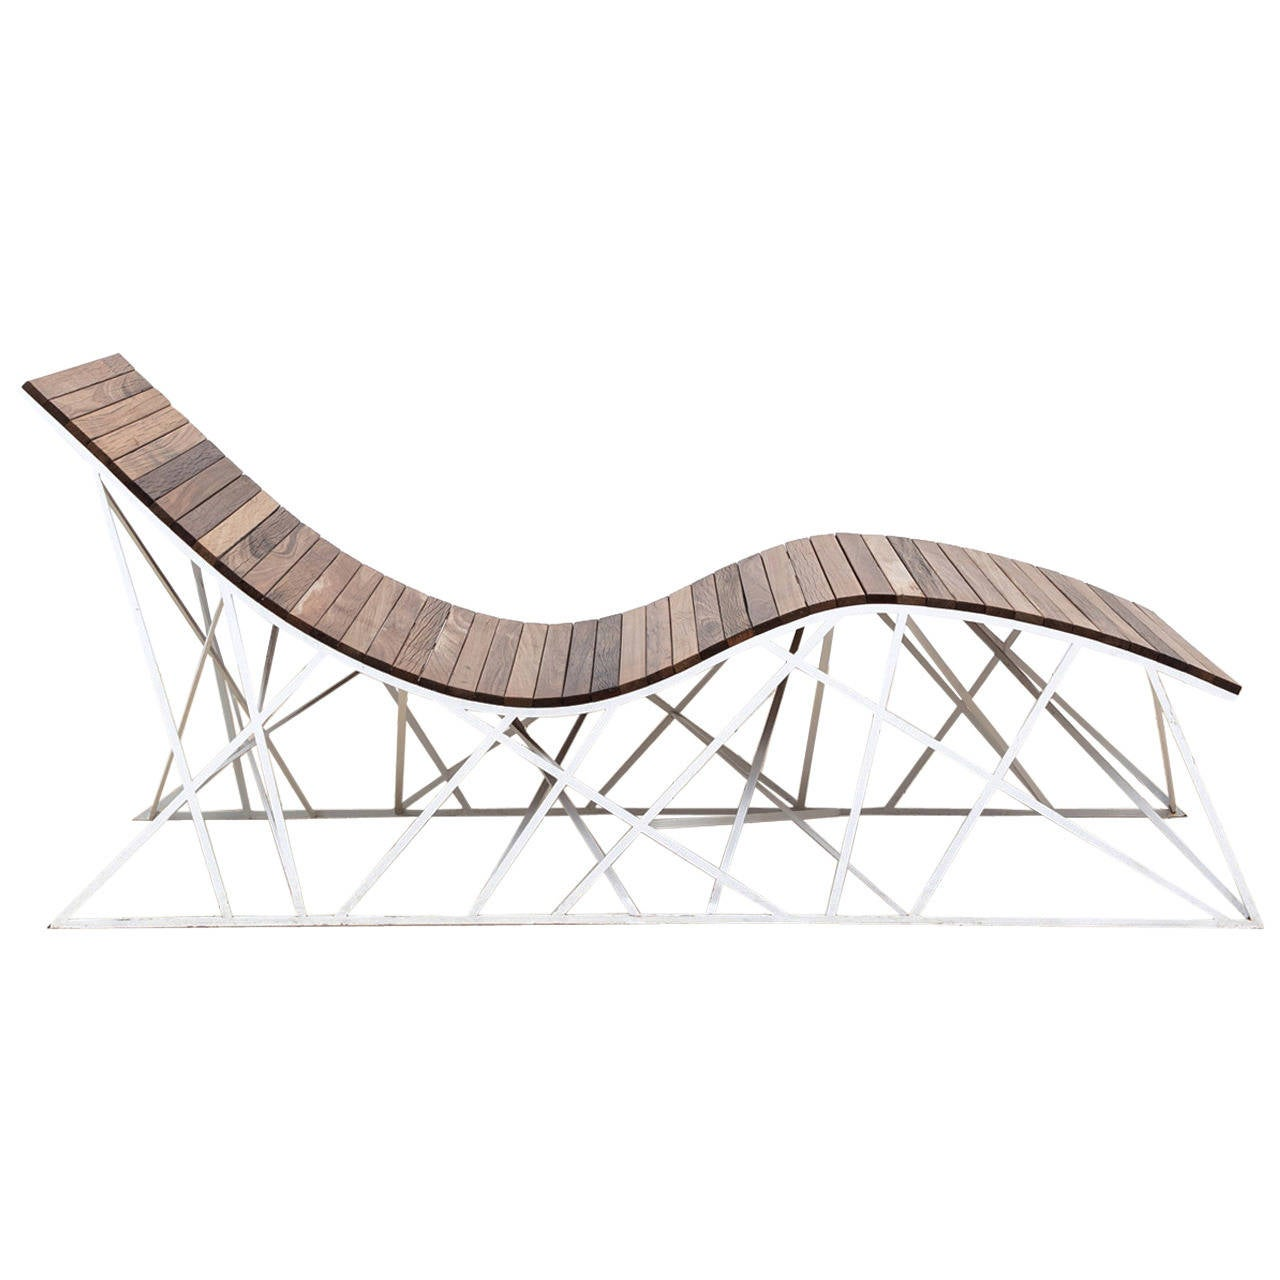 Cyclone chaise lounger by uhuru design reclaimed boardwalk ipe with steel base for sale